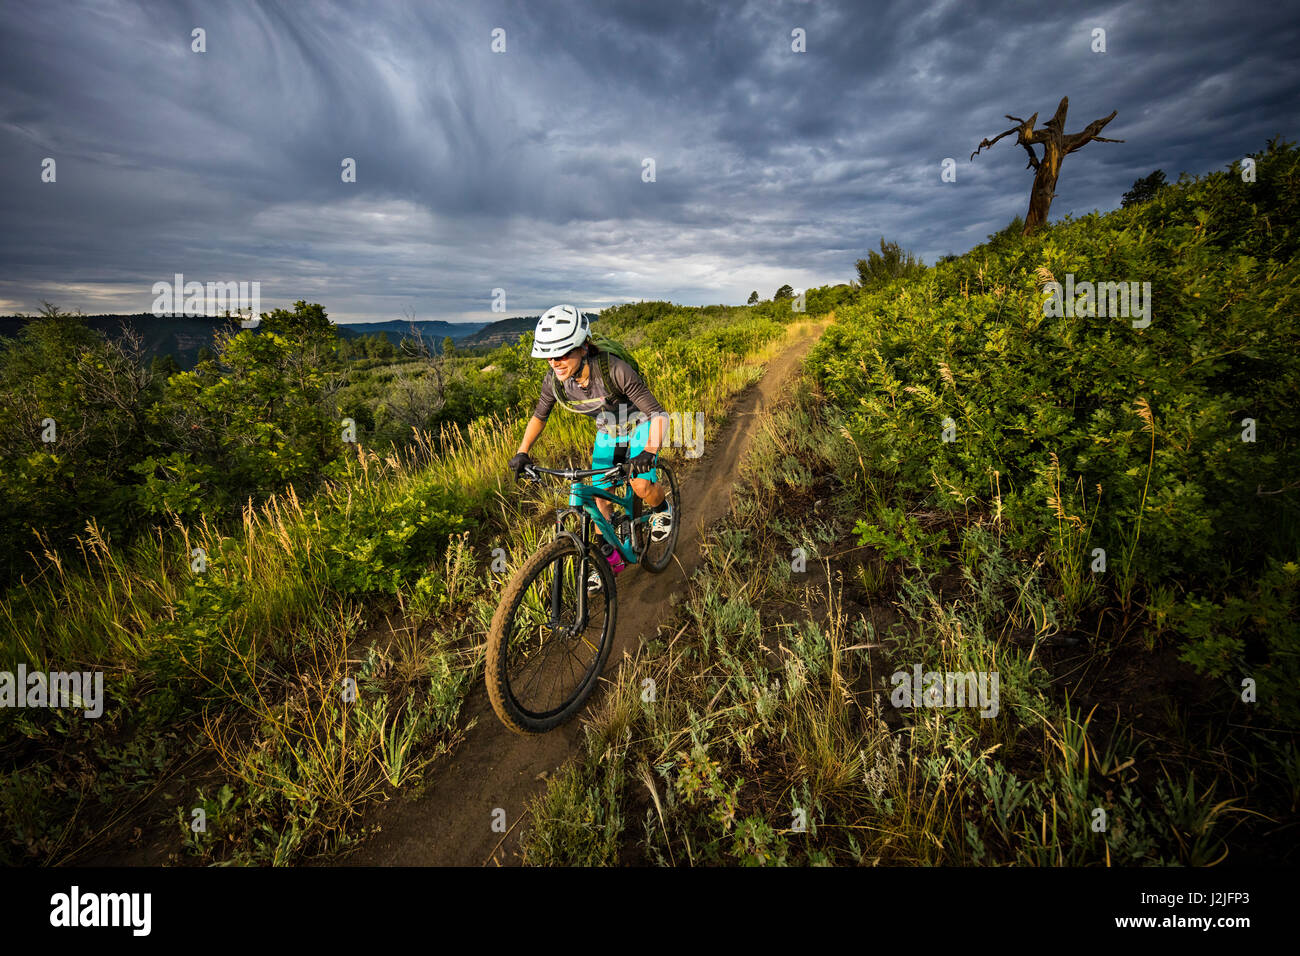 Nichole Baker mountain biking on the Twin Buttes trail network, Durango, CO. - Stock Image